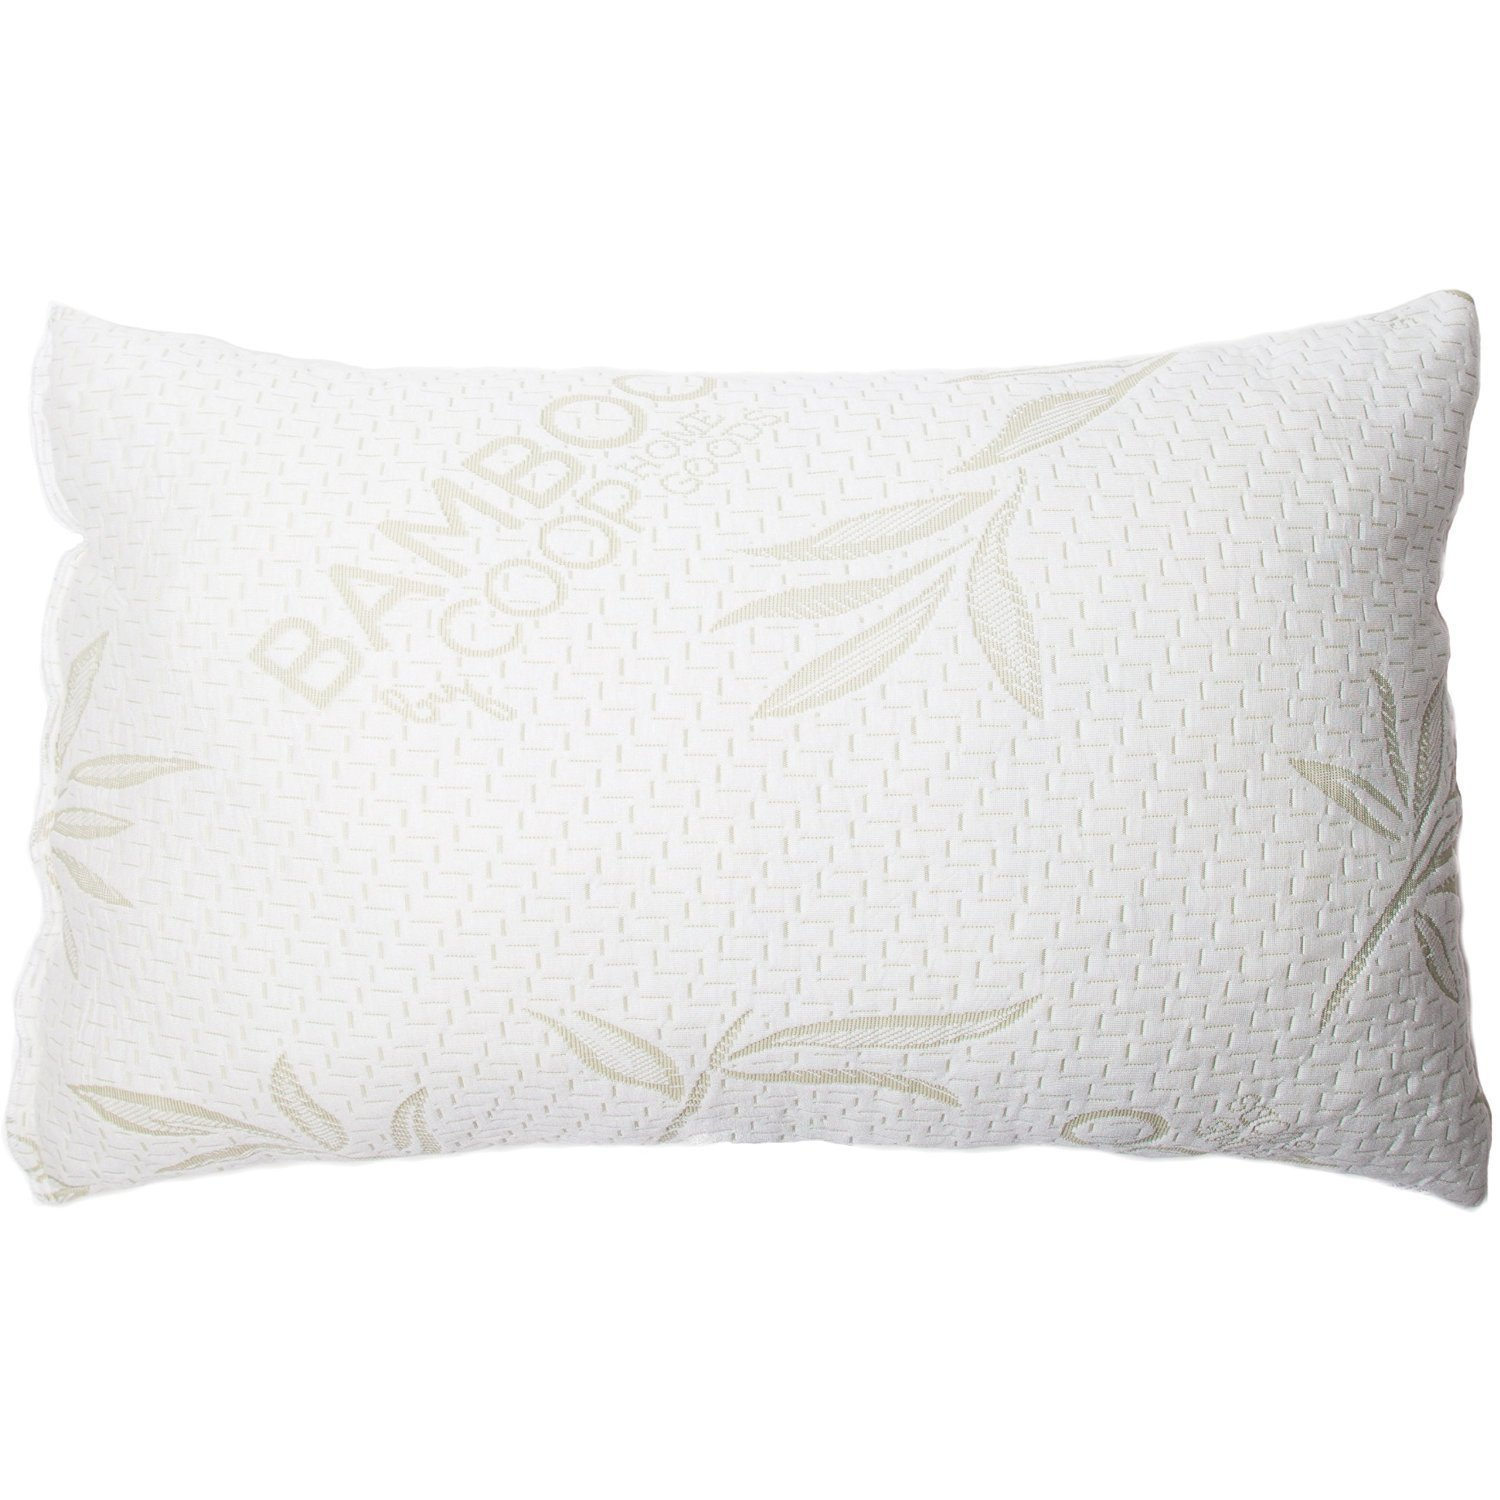 coop home goods shredded memory foam pillow with cover made from bamboo